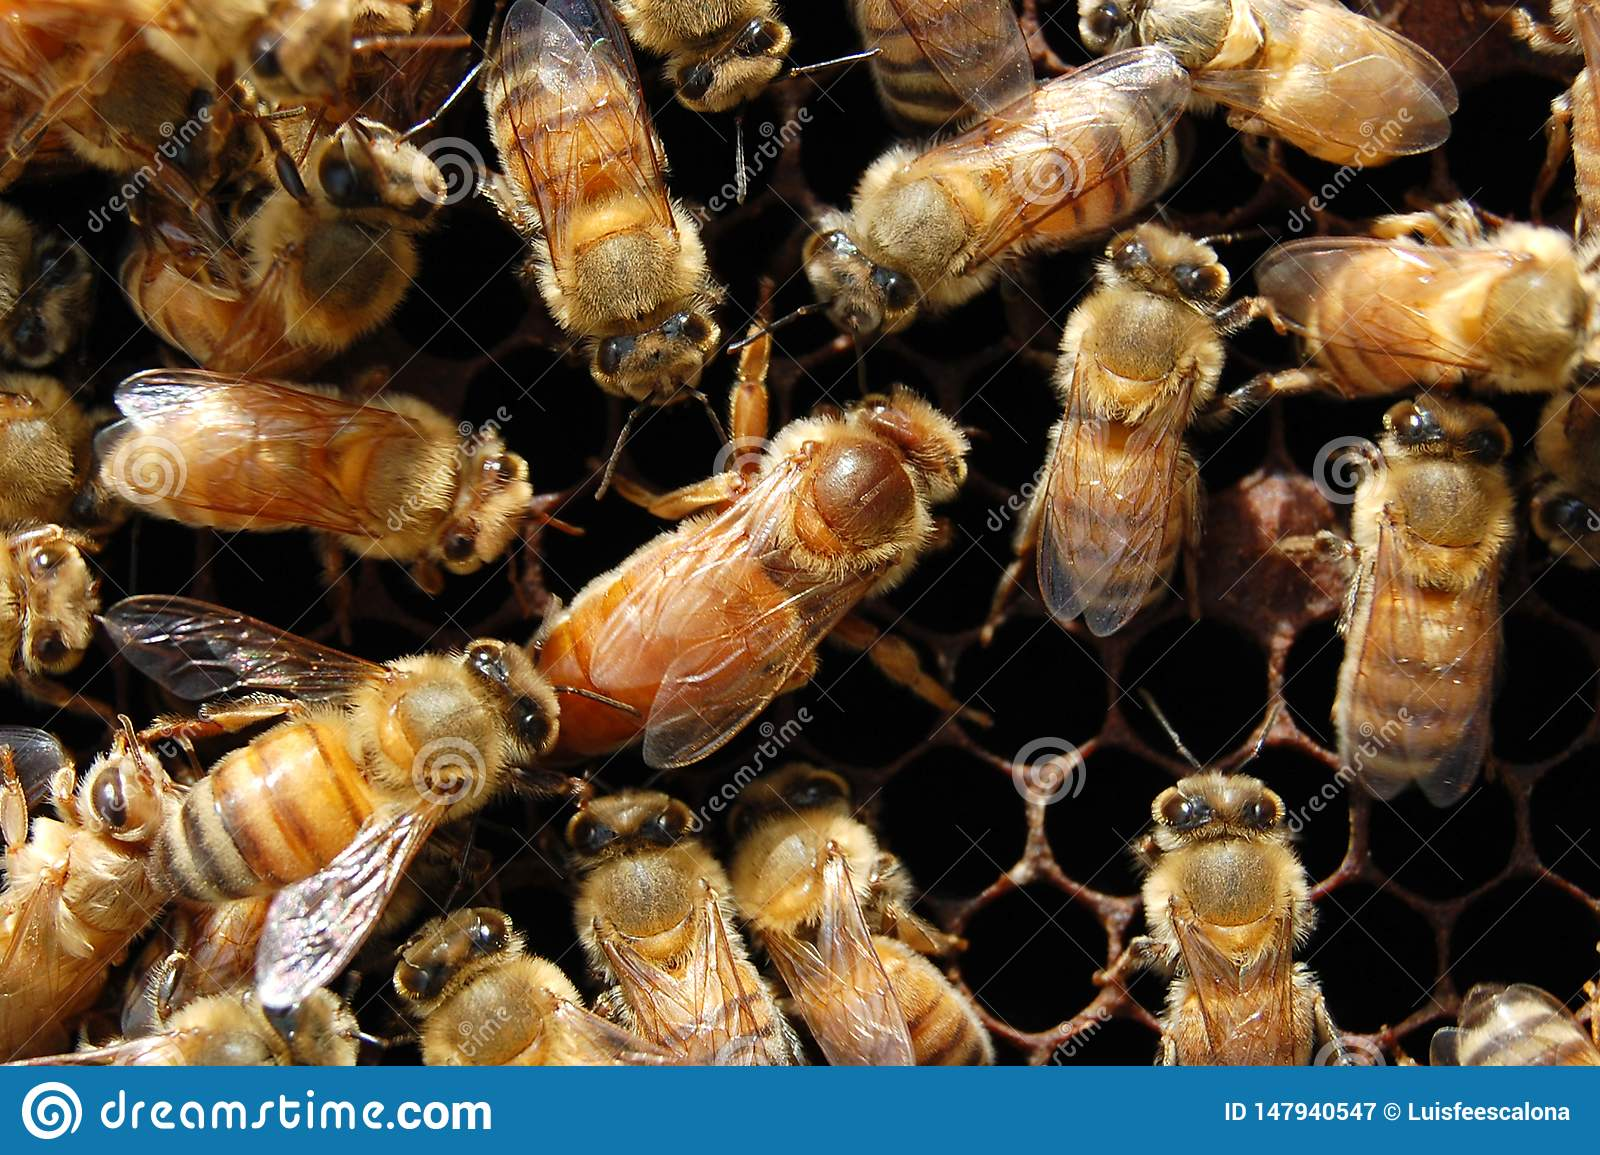 The Queen Bee and her entourage